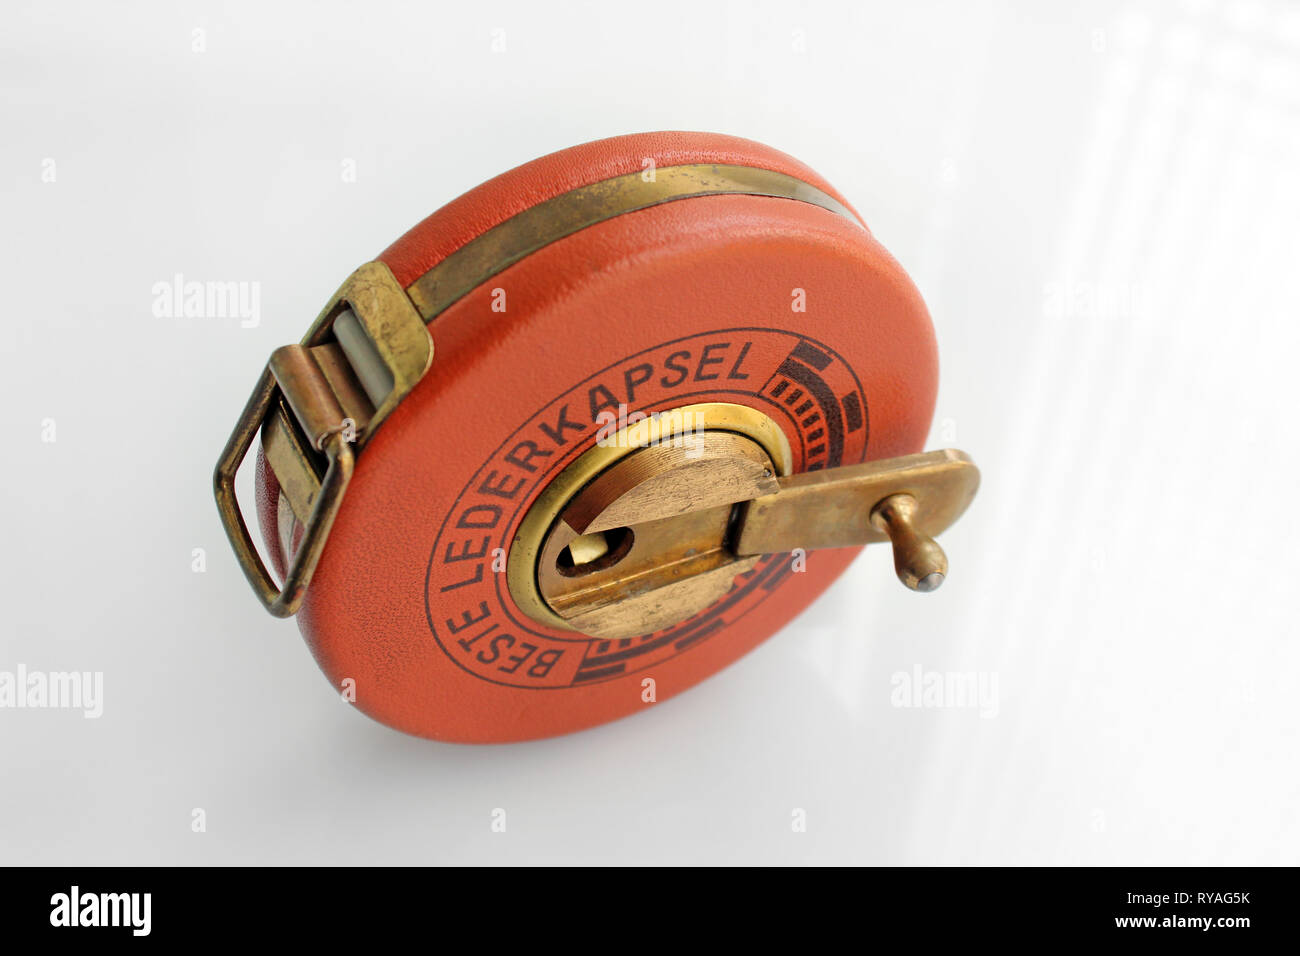 Old german roll measuring tape, isolated on white background, close-up - Stock Image